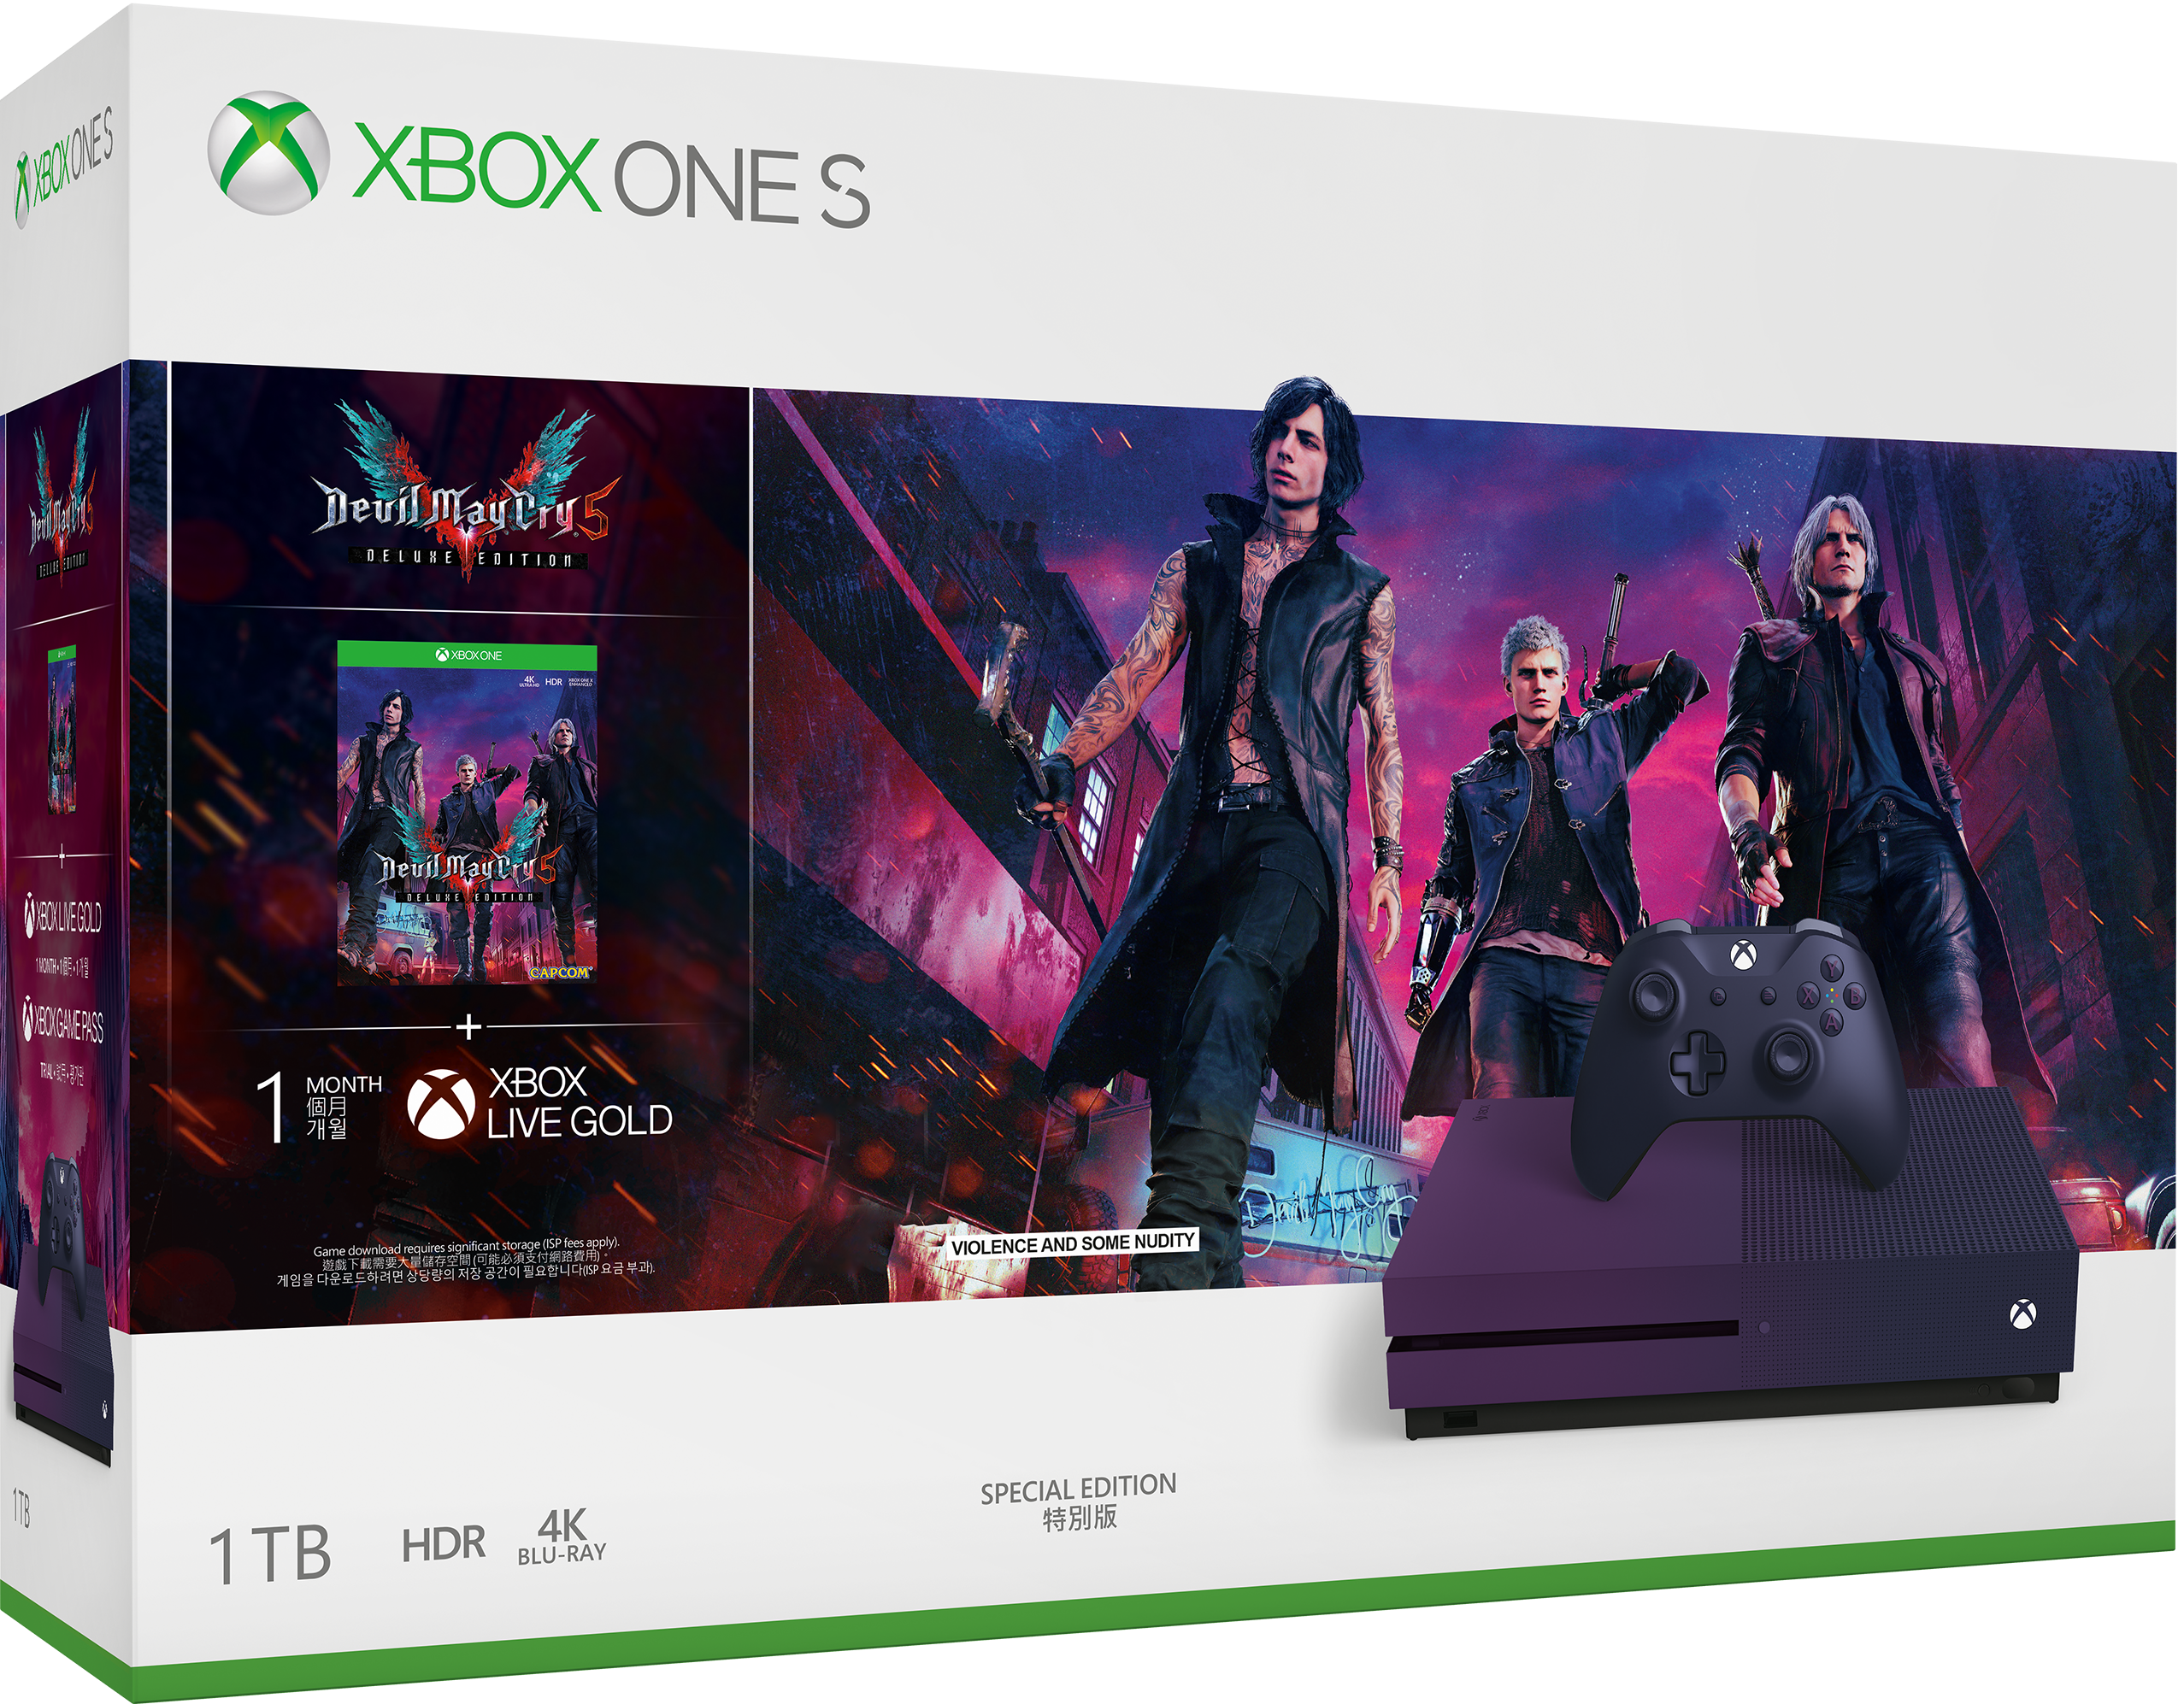 Xbox One S 1 TB Console - Devil May Cry 5 Special Edition Bundle